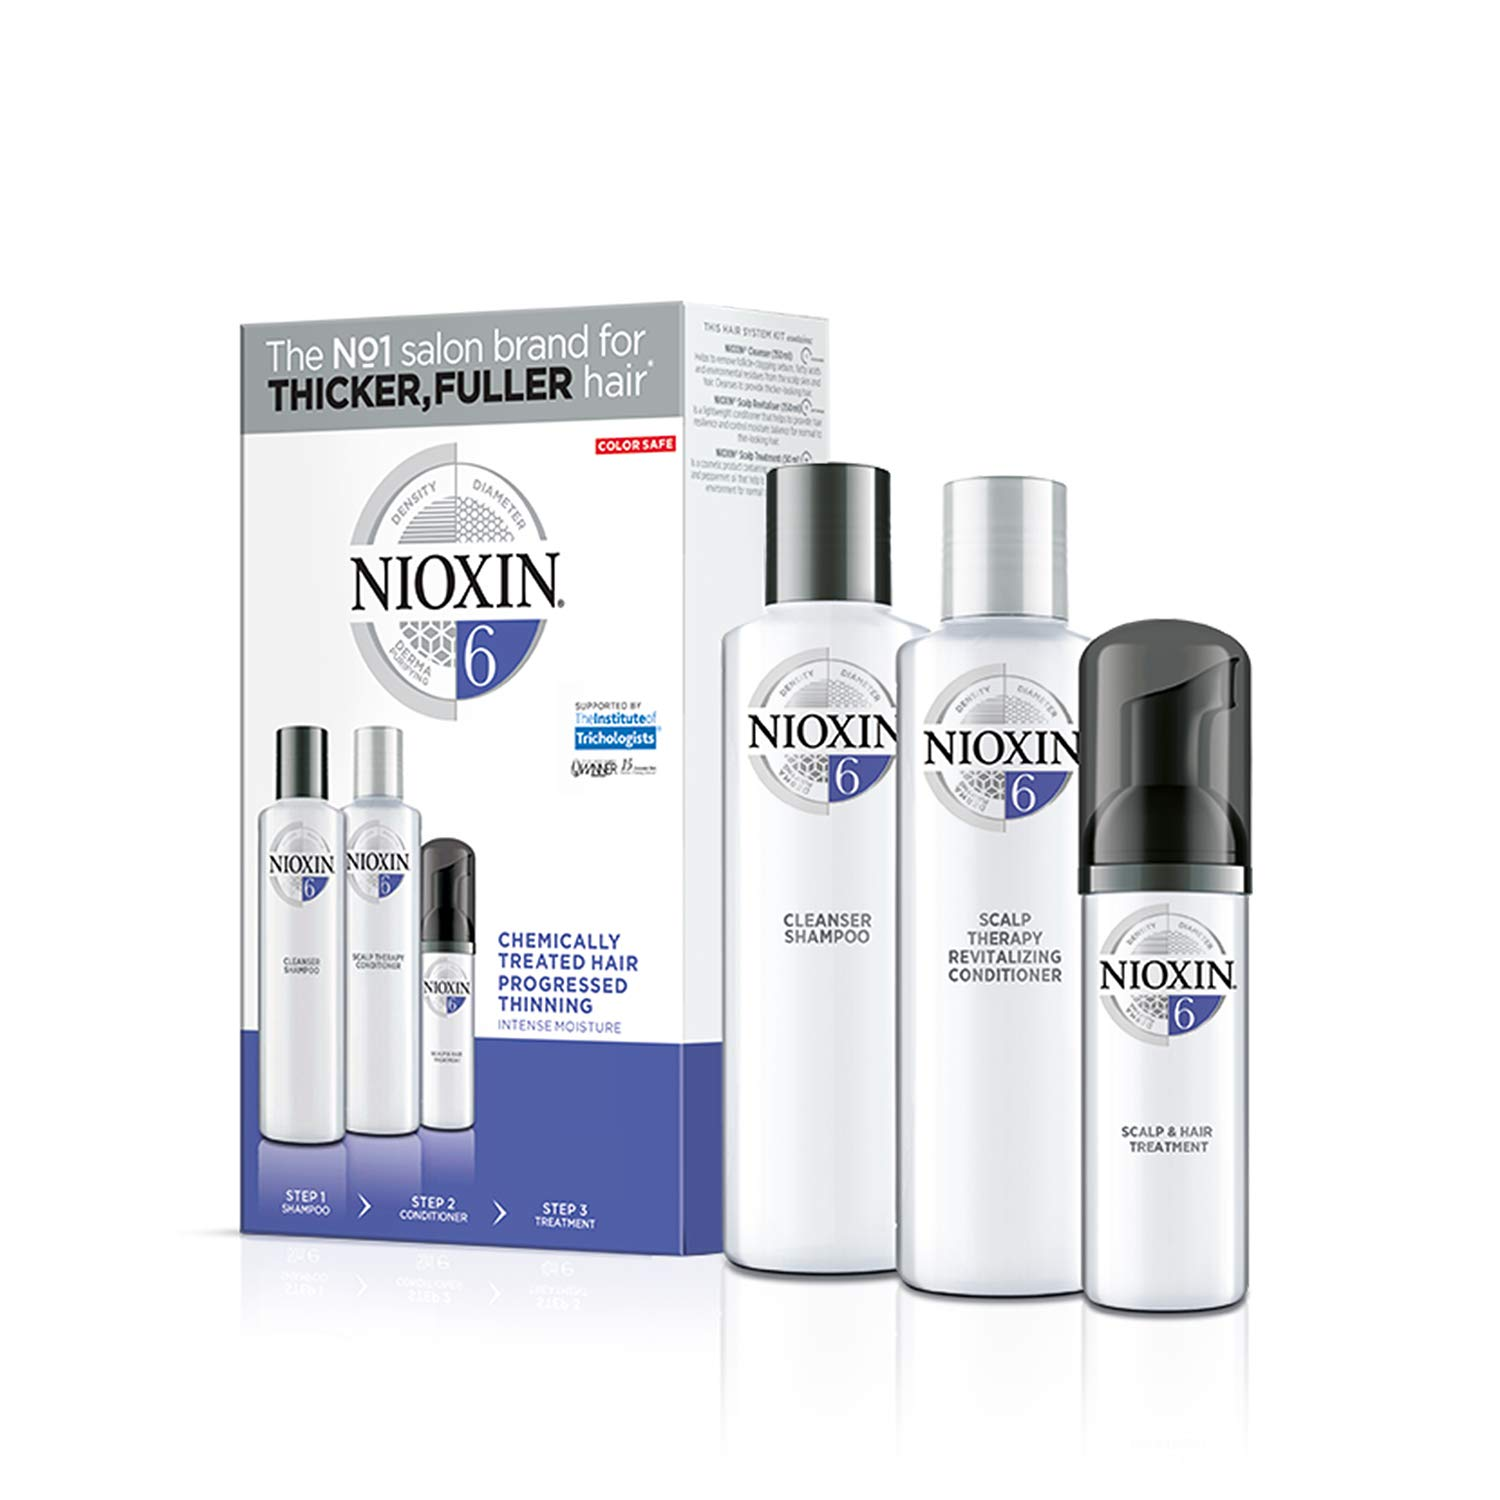 Nioxin Sistema 6 Kit - Champú, Acondicionador y Tratamiento - 150+150+50ml: Amazon.es